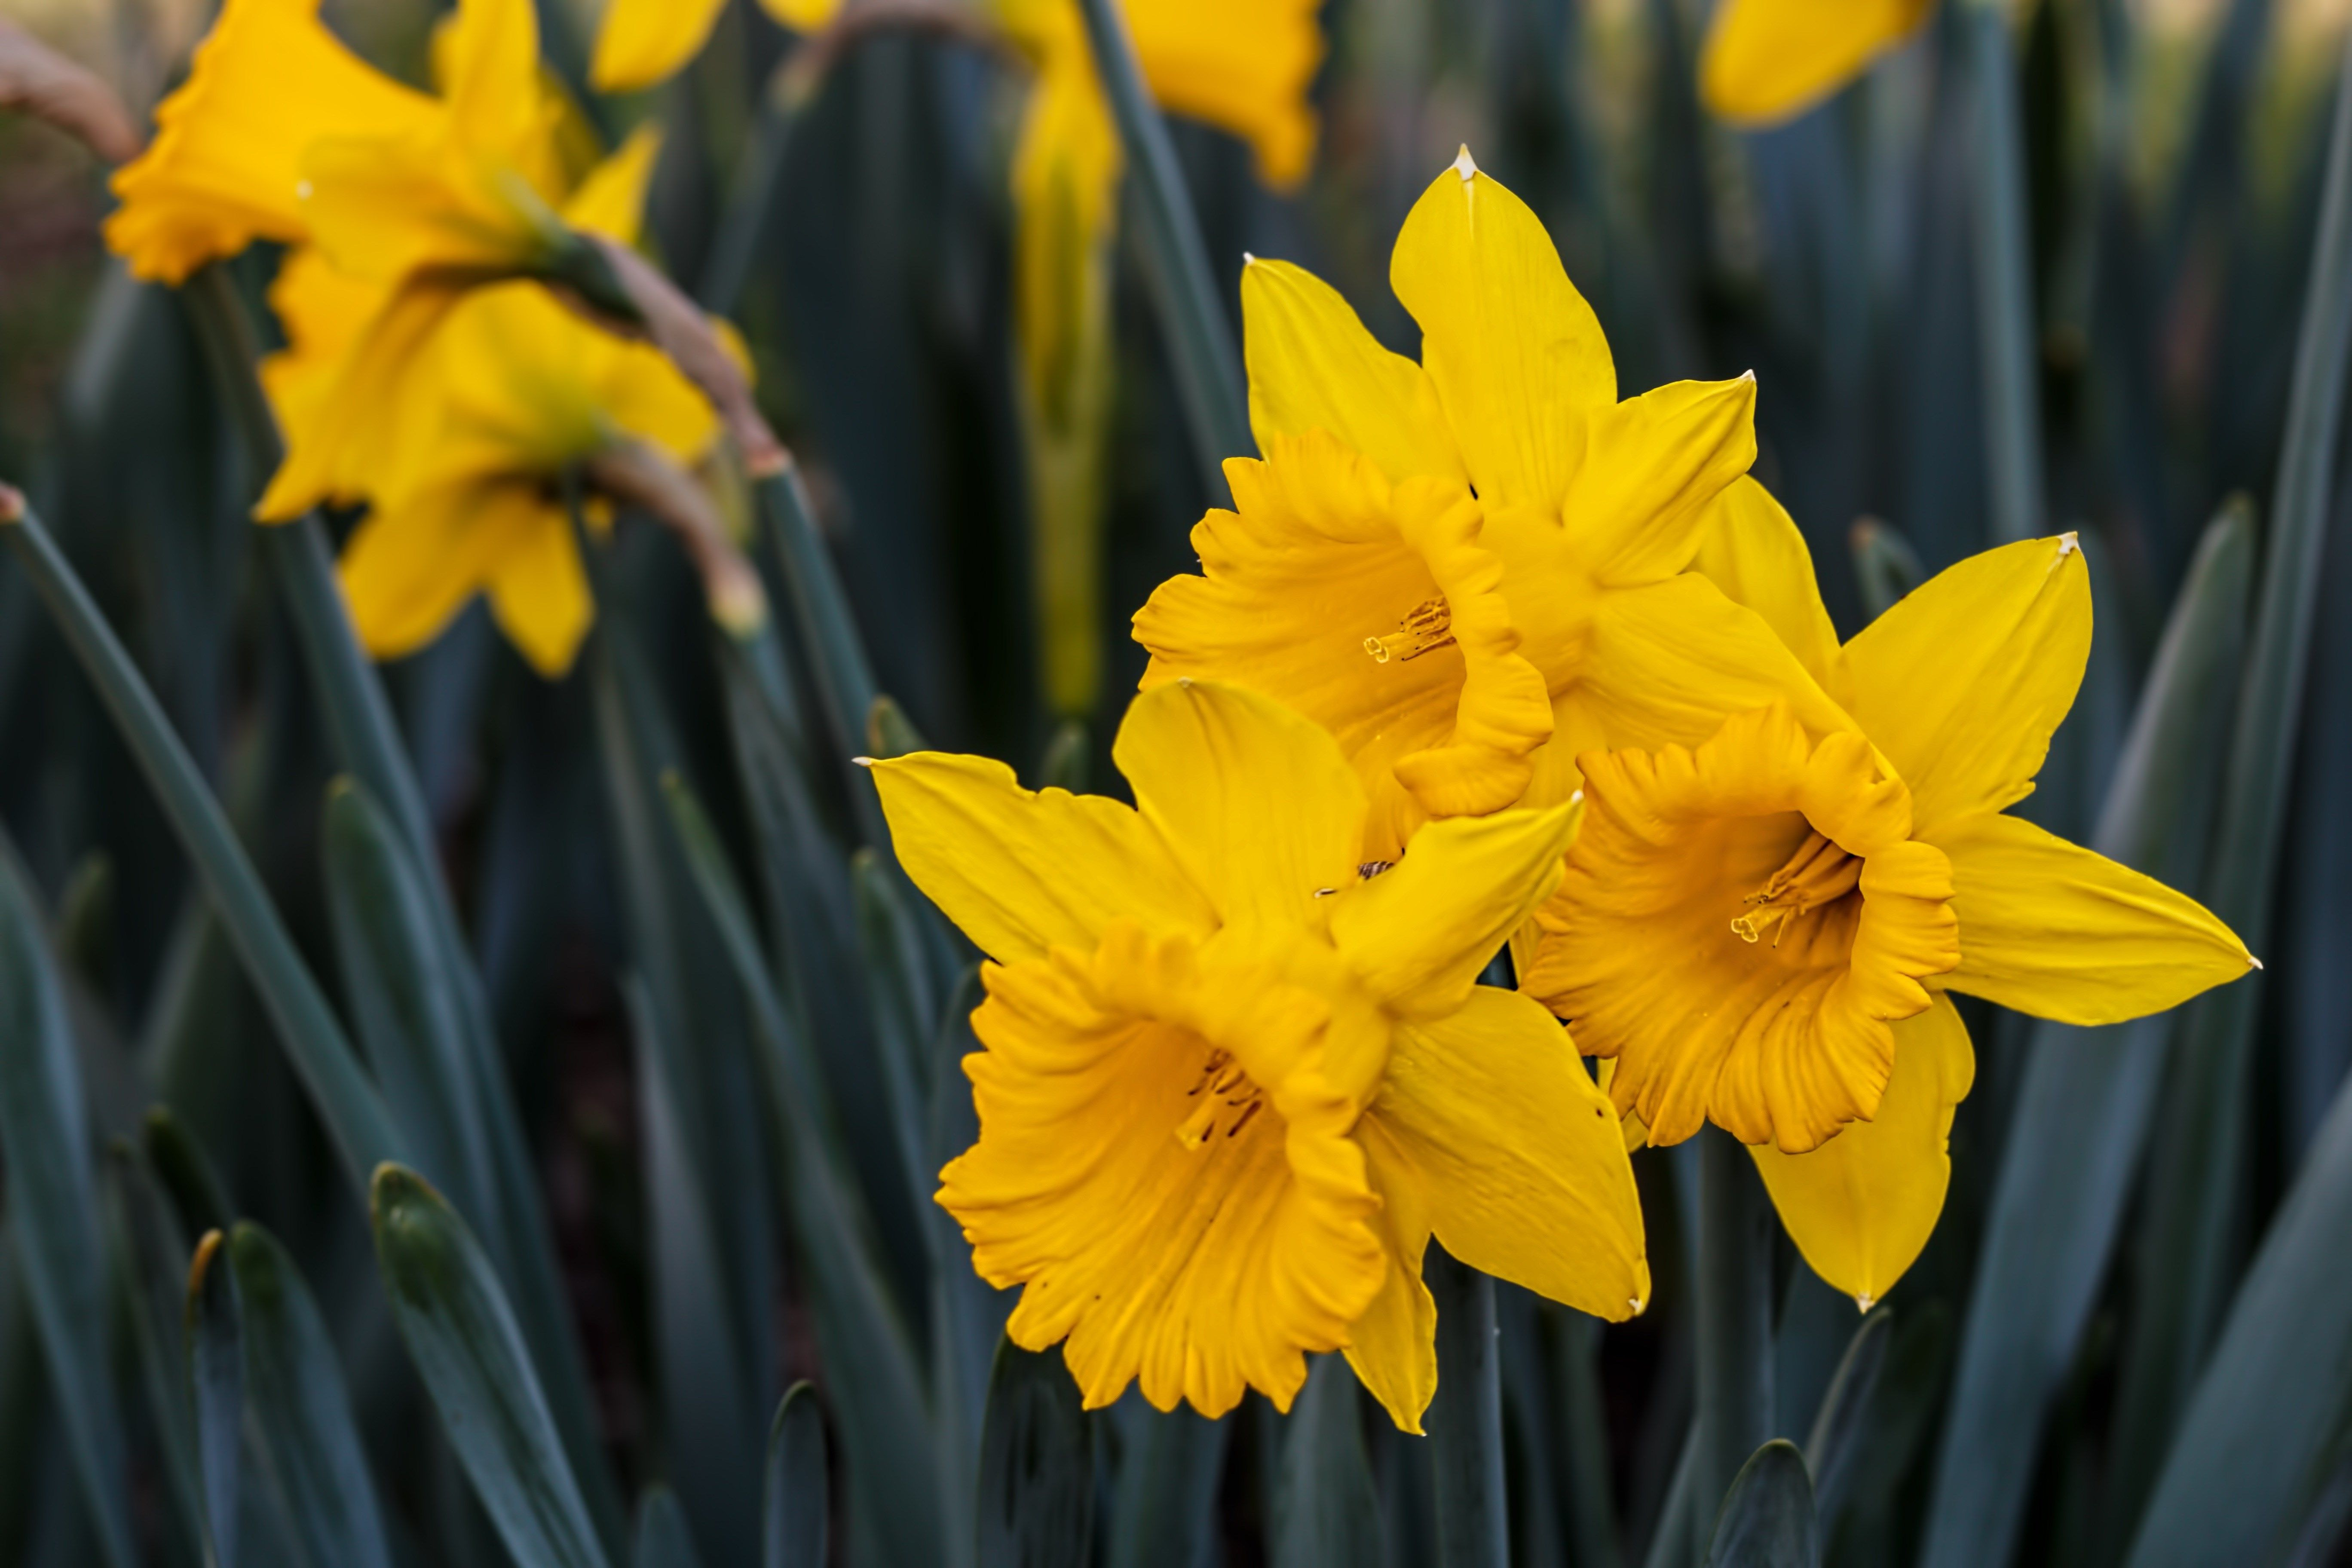 5472x3648 Amazing Daffodil Daffodils Narcissus Spring Images